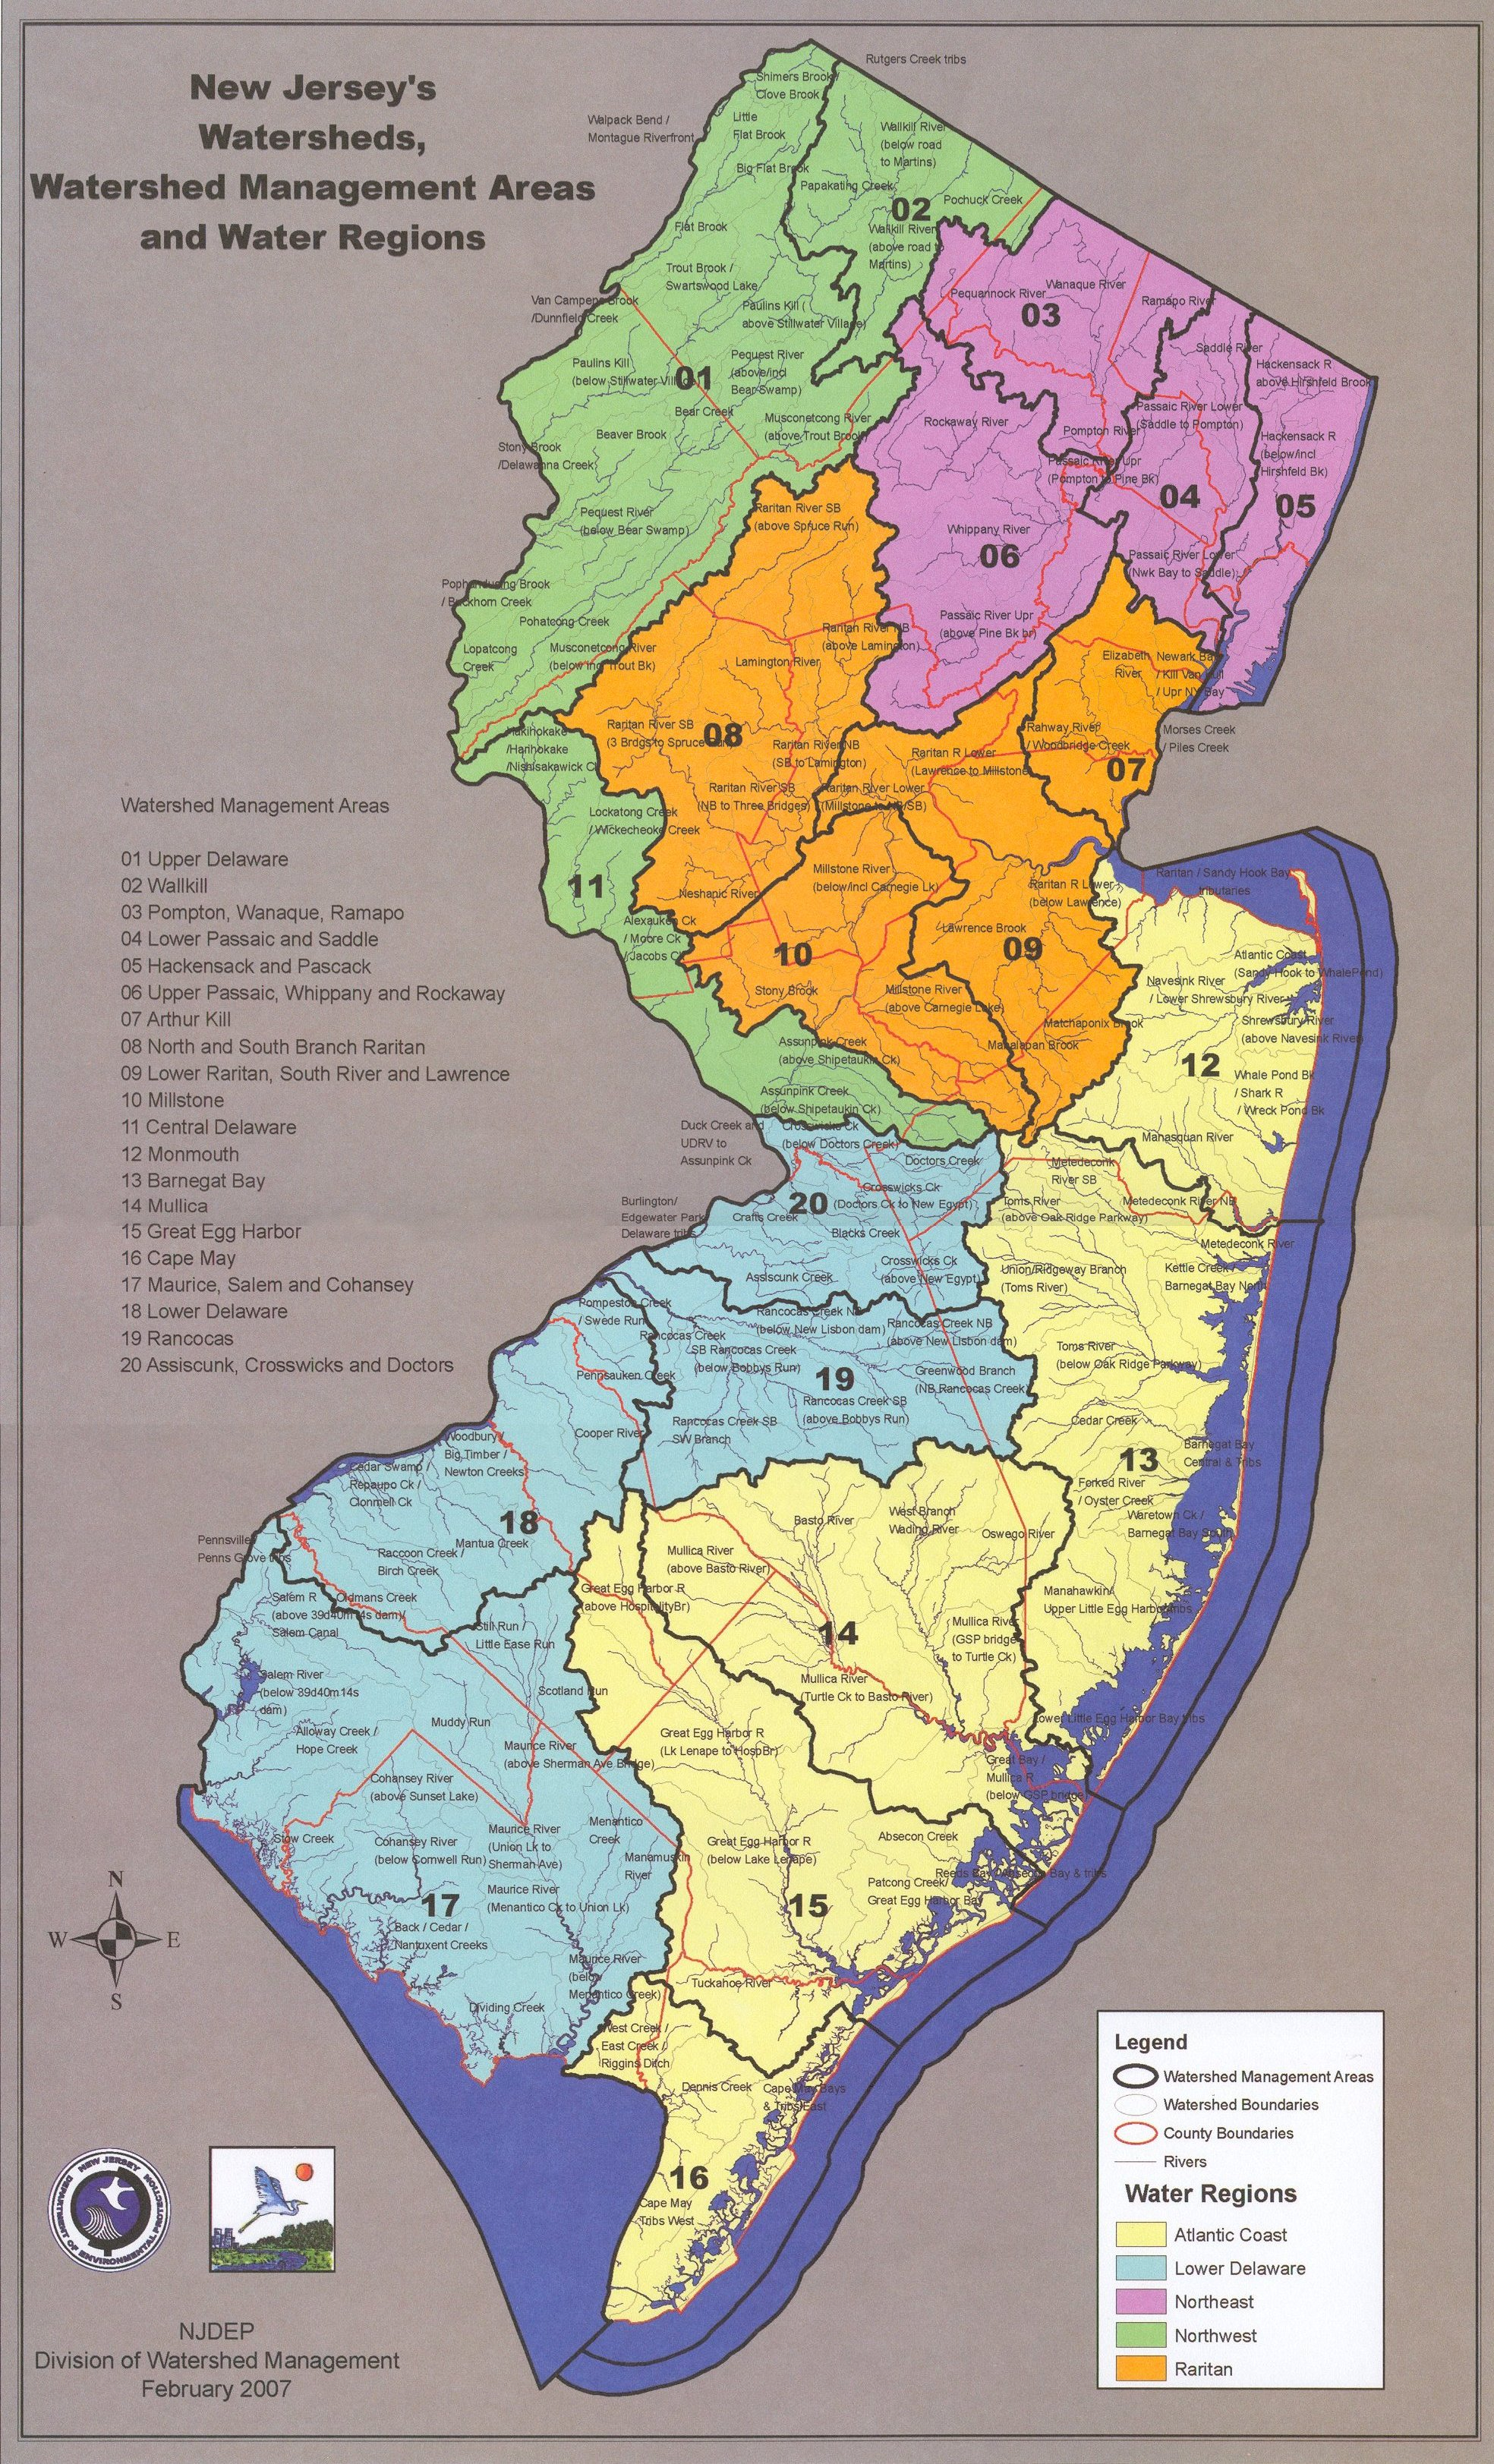 new jersey watershed management areas. new jersey watershed management areas  raritanrutgersedu